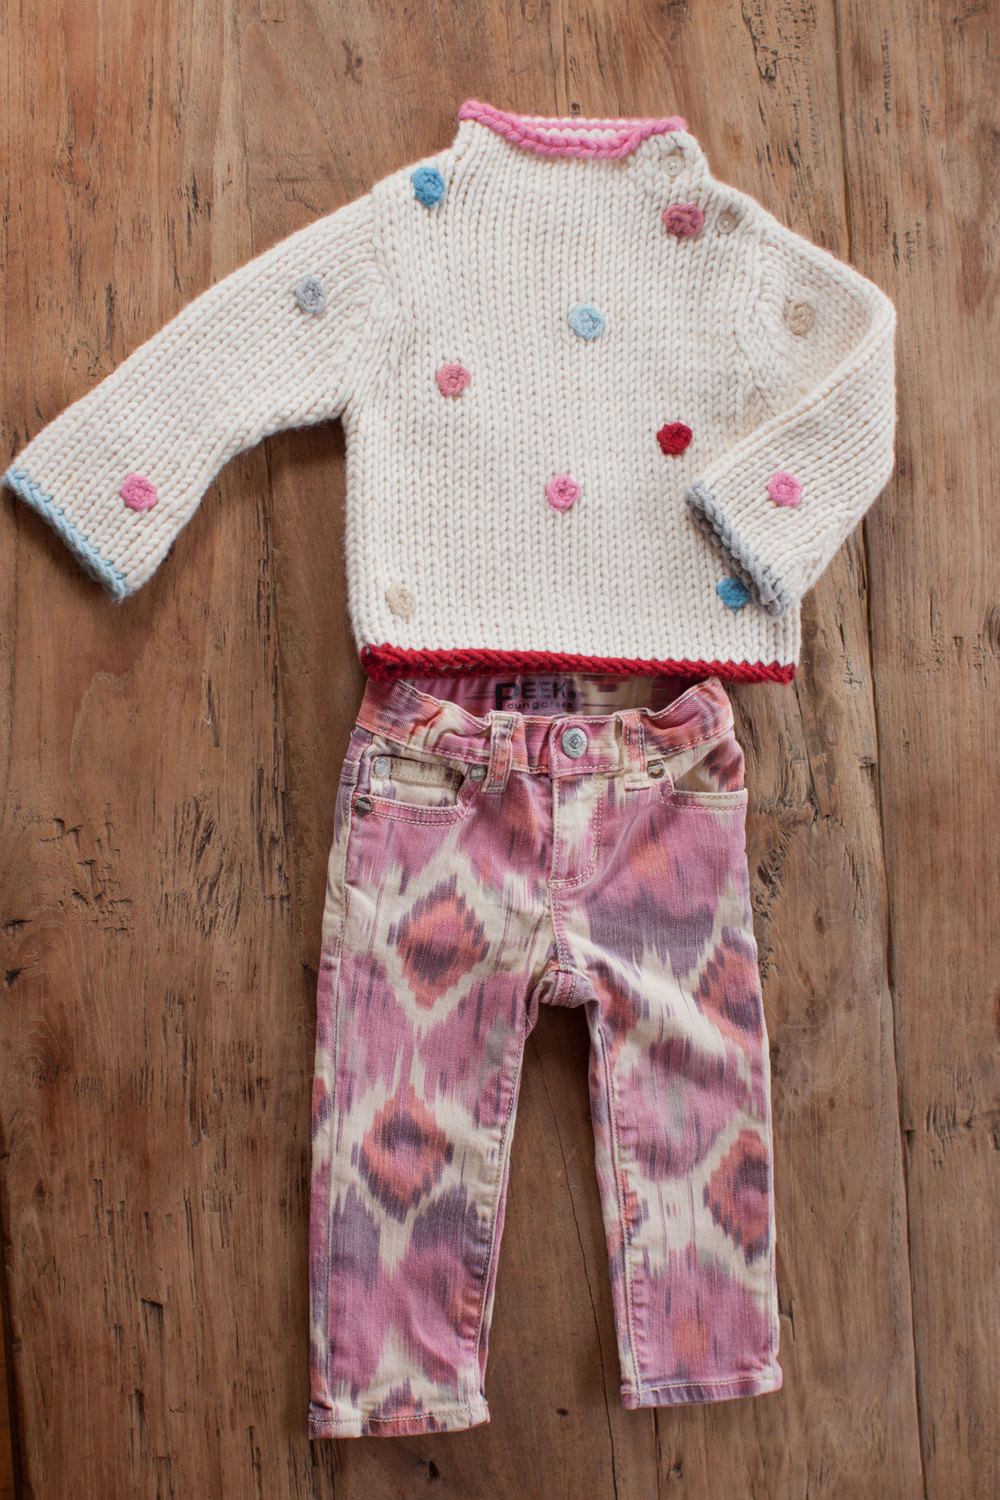 Image includes Girls Gap chunky sweater. Size: 6-12 months. $8.50.